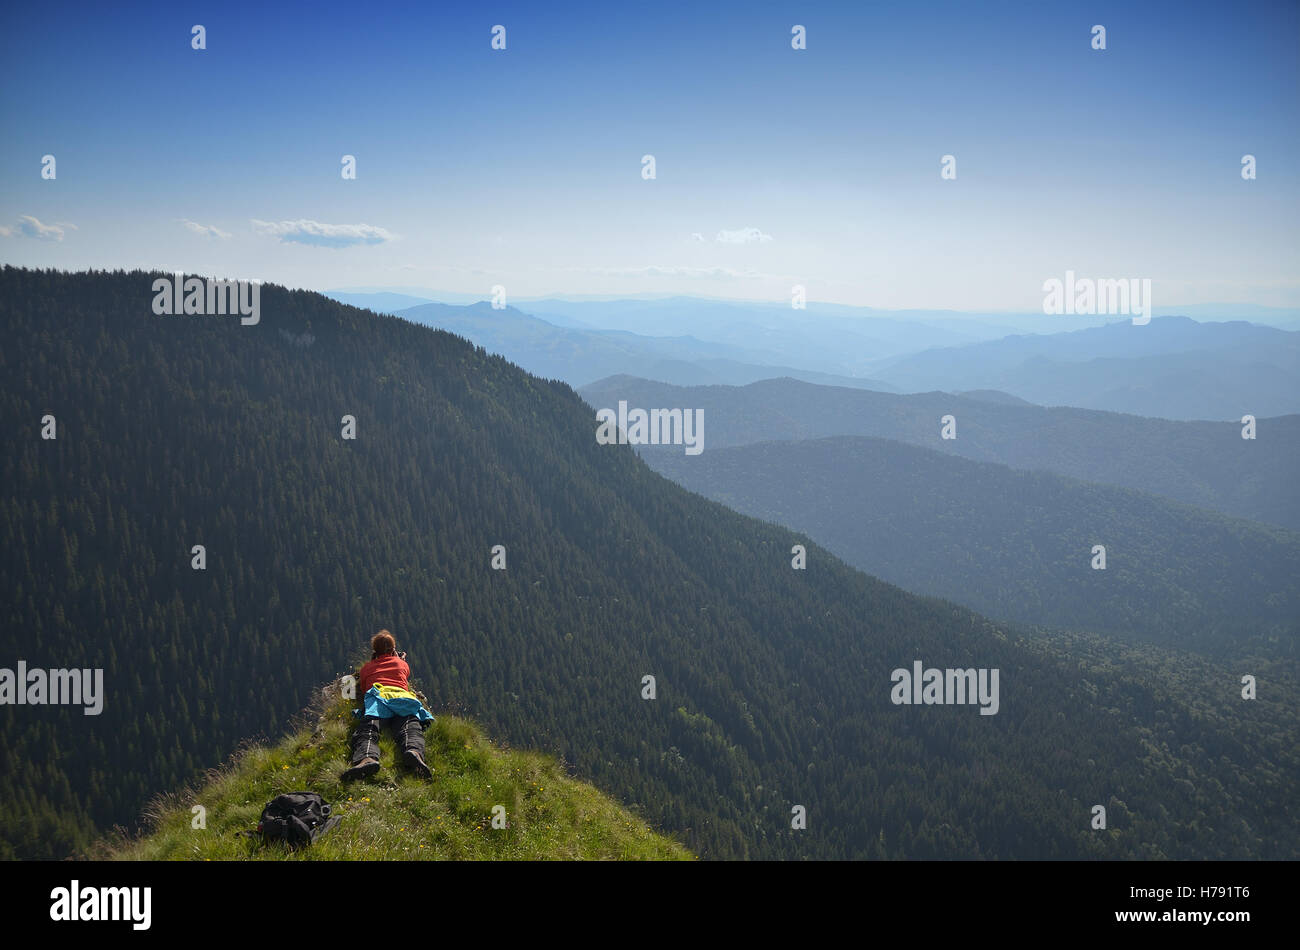 Female photographers on a mountain peak shooting the landscape - Stock Image